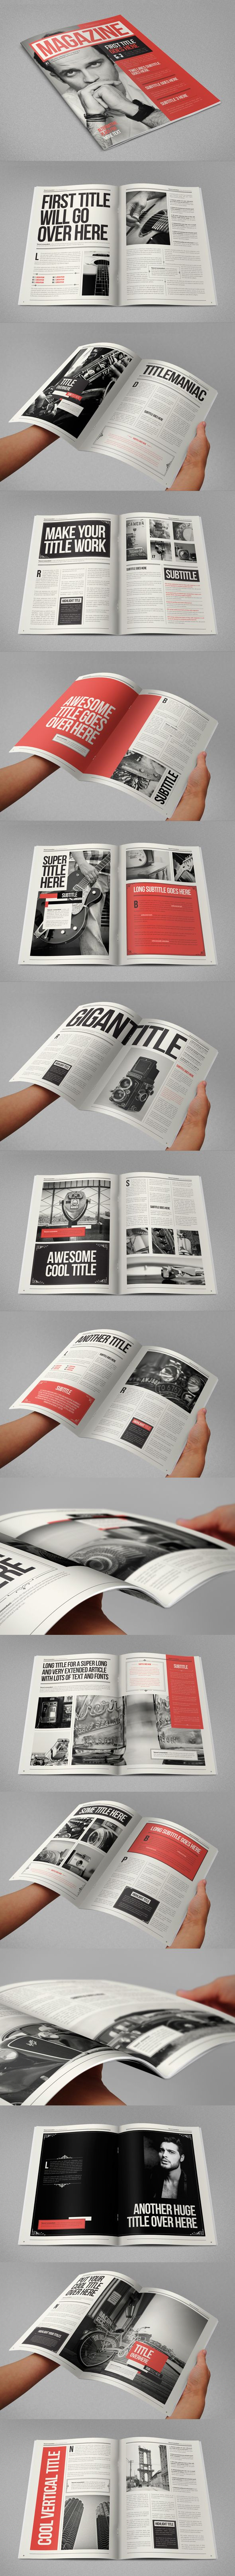 Retro Vintage Magazine on Editorial Design Served - there are some lovely templates representing a consistent theme